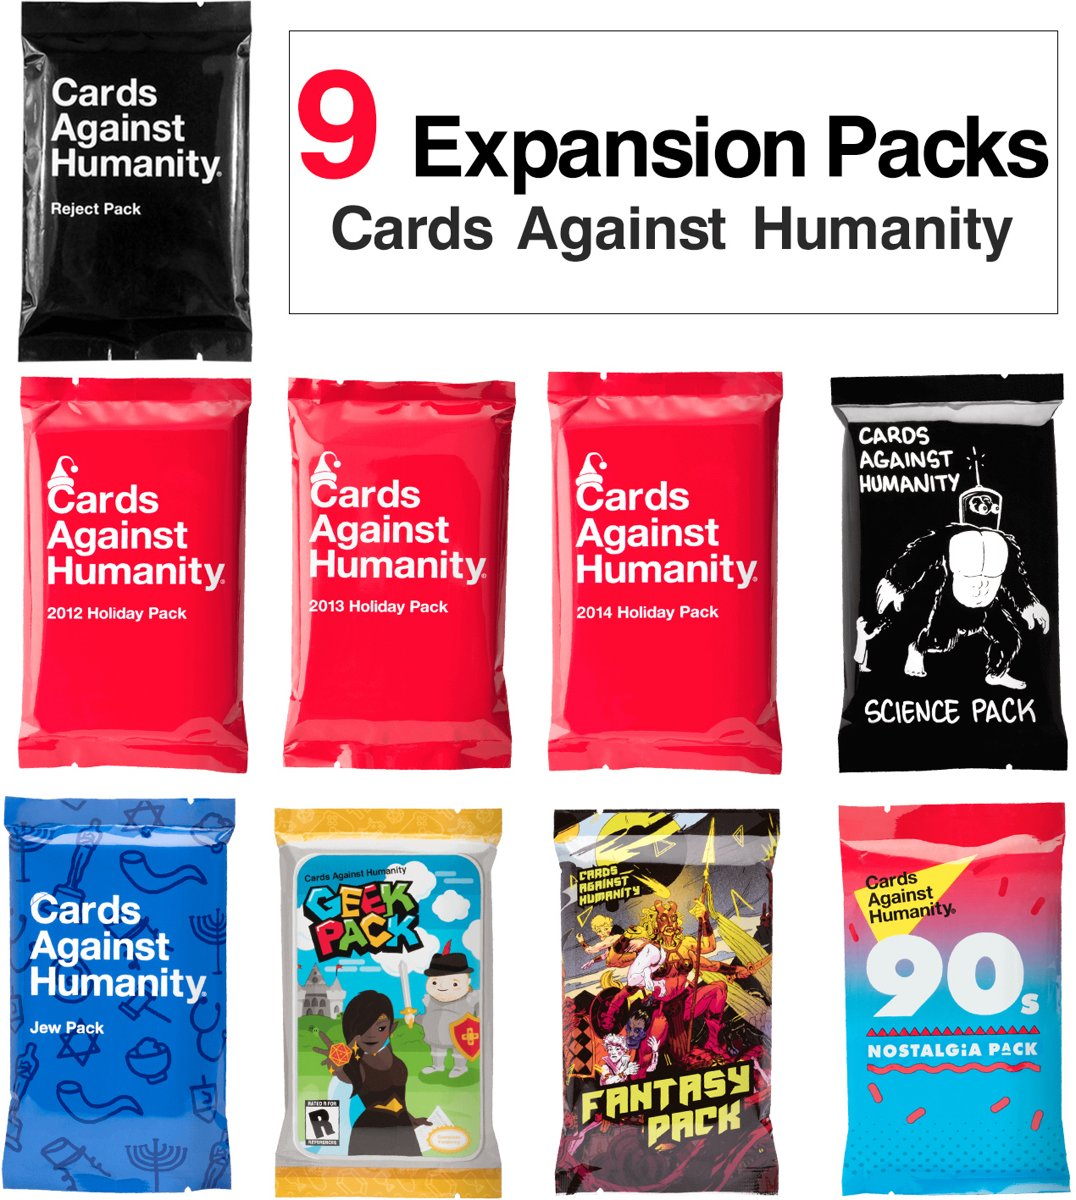 Cards Against Humanity 9 Expansion Packs Big Sale